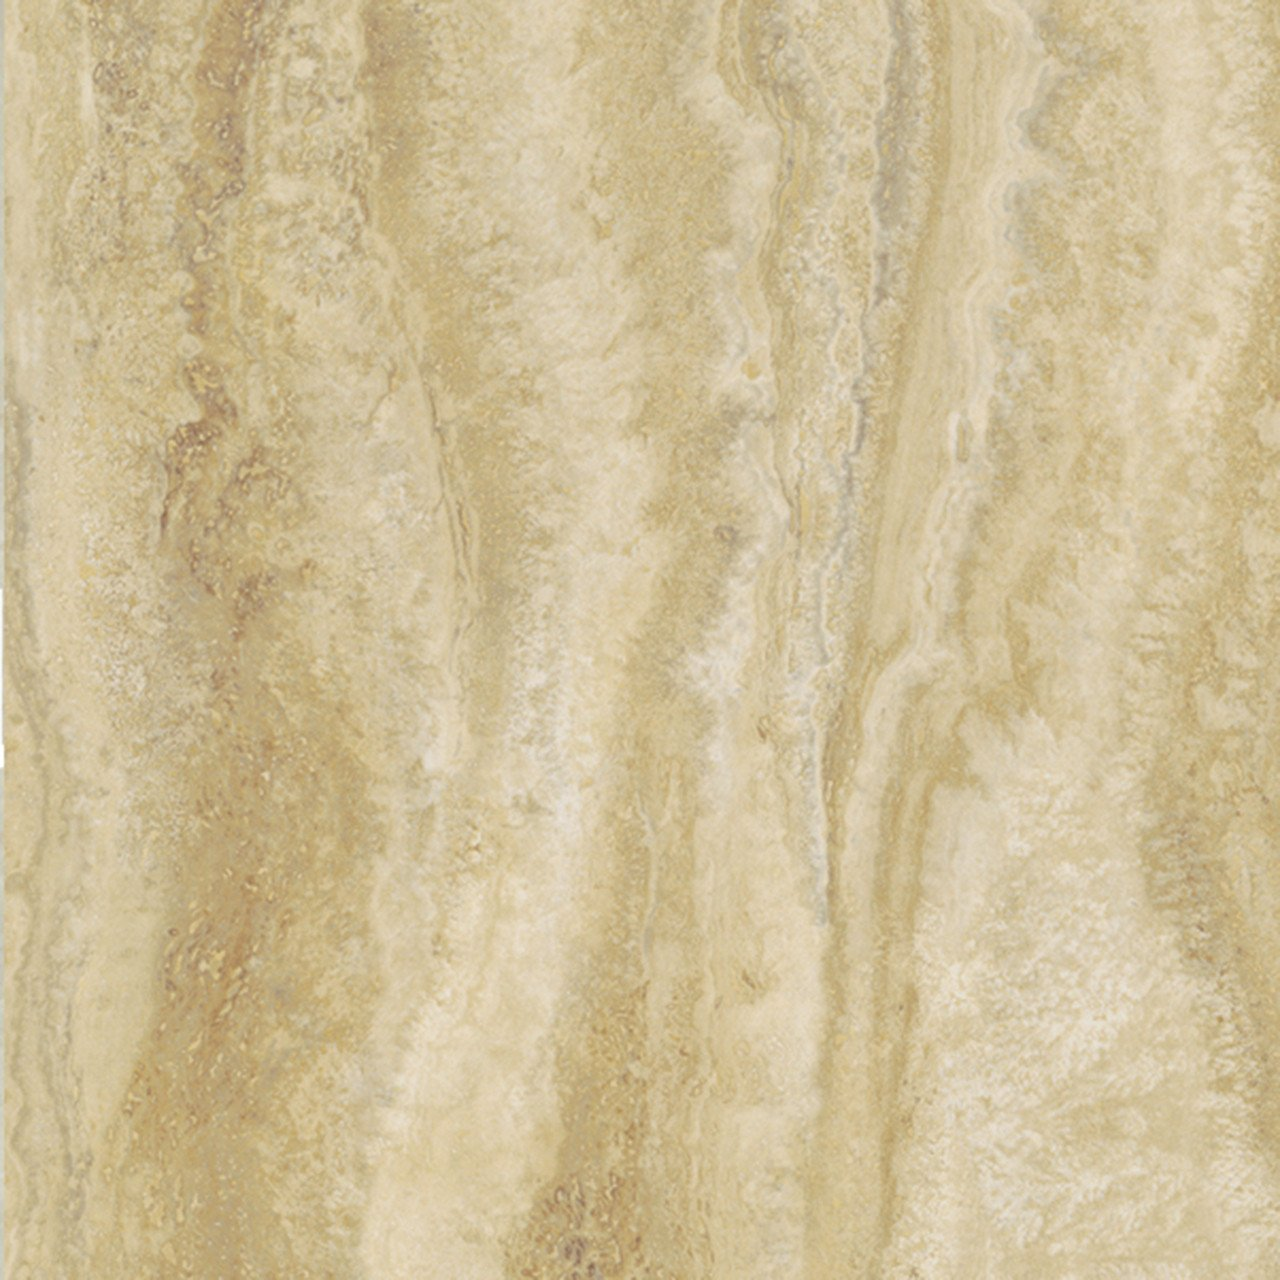 Multipanel Classic Travertine Hydro-Lock Tongue & Groove Bathroom Wall Panel